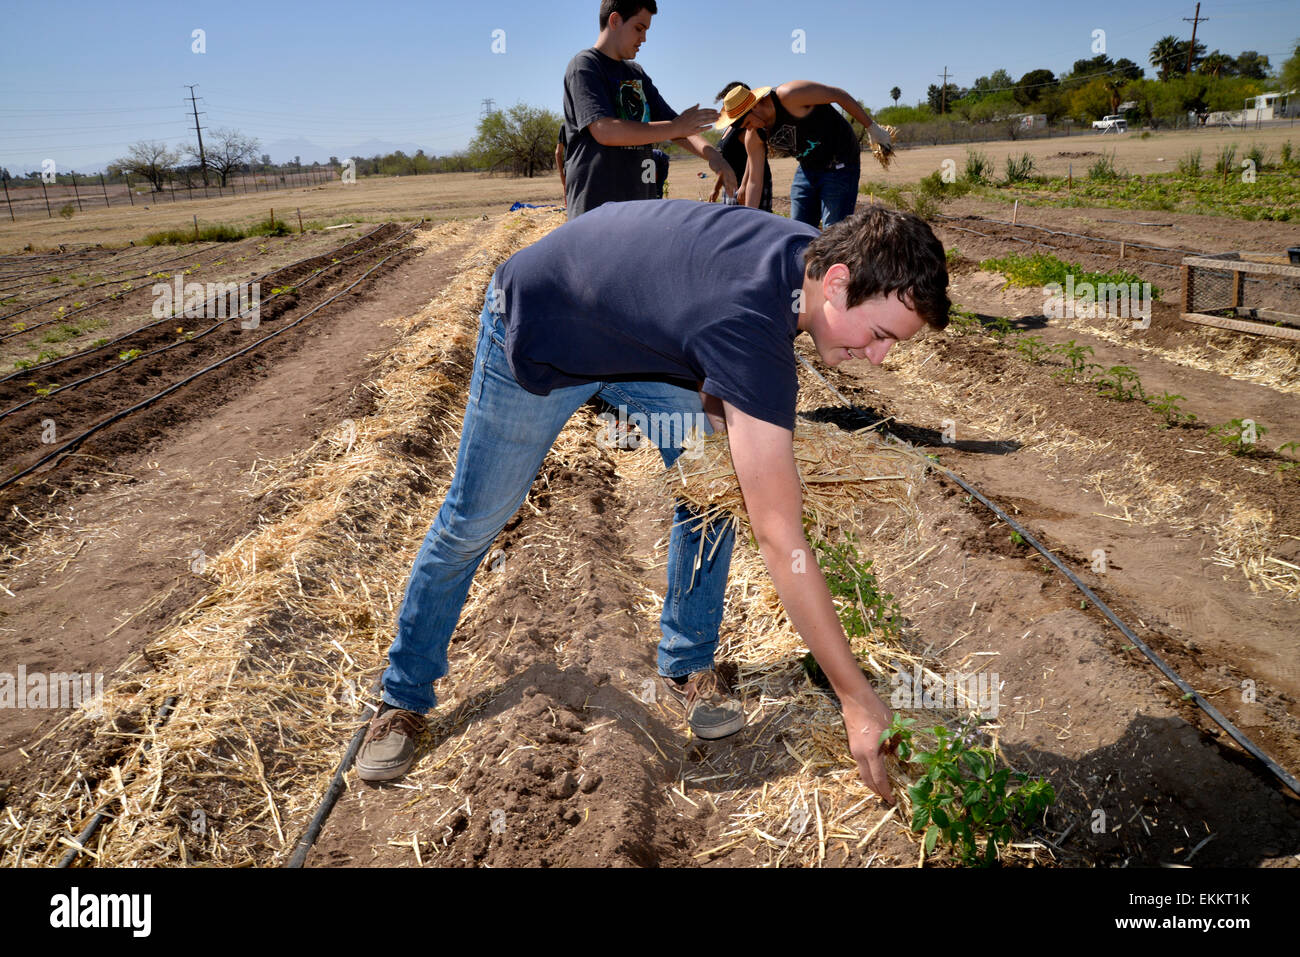 Student and adult volunteers work to produce food for needy families on a Chávez Day of Service, Tucson, Arizona, - Stock Image